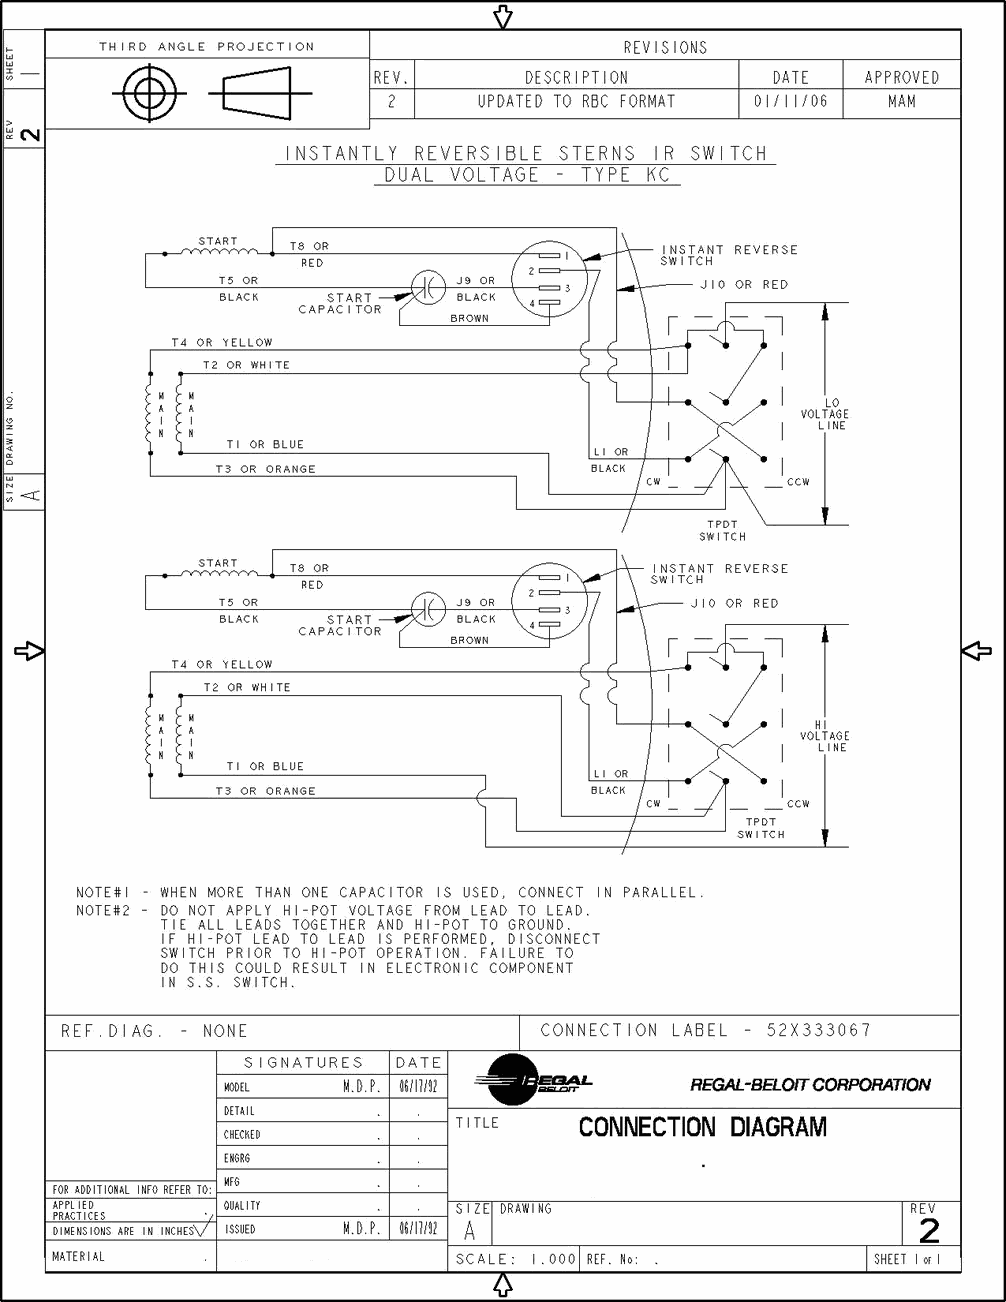 10326  Hp Ao Smith Electric Motor Wiring Diagram on ao smith electric motors fan, ao smith pool pump motors diagram, weg electric motor wiring diagram, general electric motor wiring diagram, ao smith wiring connections, 2 speed electric motor wiring diagram, sterling electric motor wiring diagram, sta-rite pump parts diagram, ao smith ac motor wiring, ao smith ust1102 wiring, century electric motor parts diagram, lincoln electric motor wiring diagram, doerr lr22132 electric motor wiring diagram, magnetek electric motor wiring diagram, ao smith motors replacement, ge electric motor wiring diagram, hayward electric motor wiring diagram, ao smith commercial water heater parts, peerless electric motor wiring diagram, marathon electric motor wiring diagram,